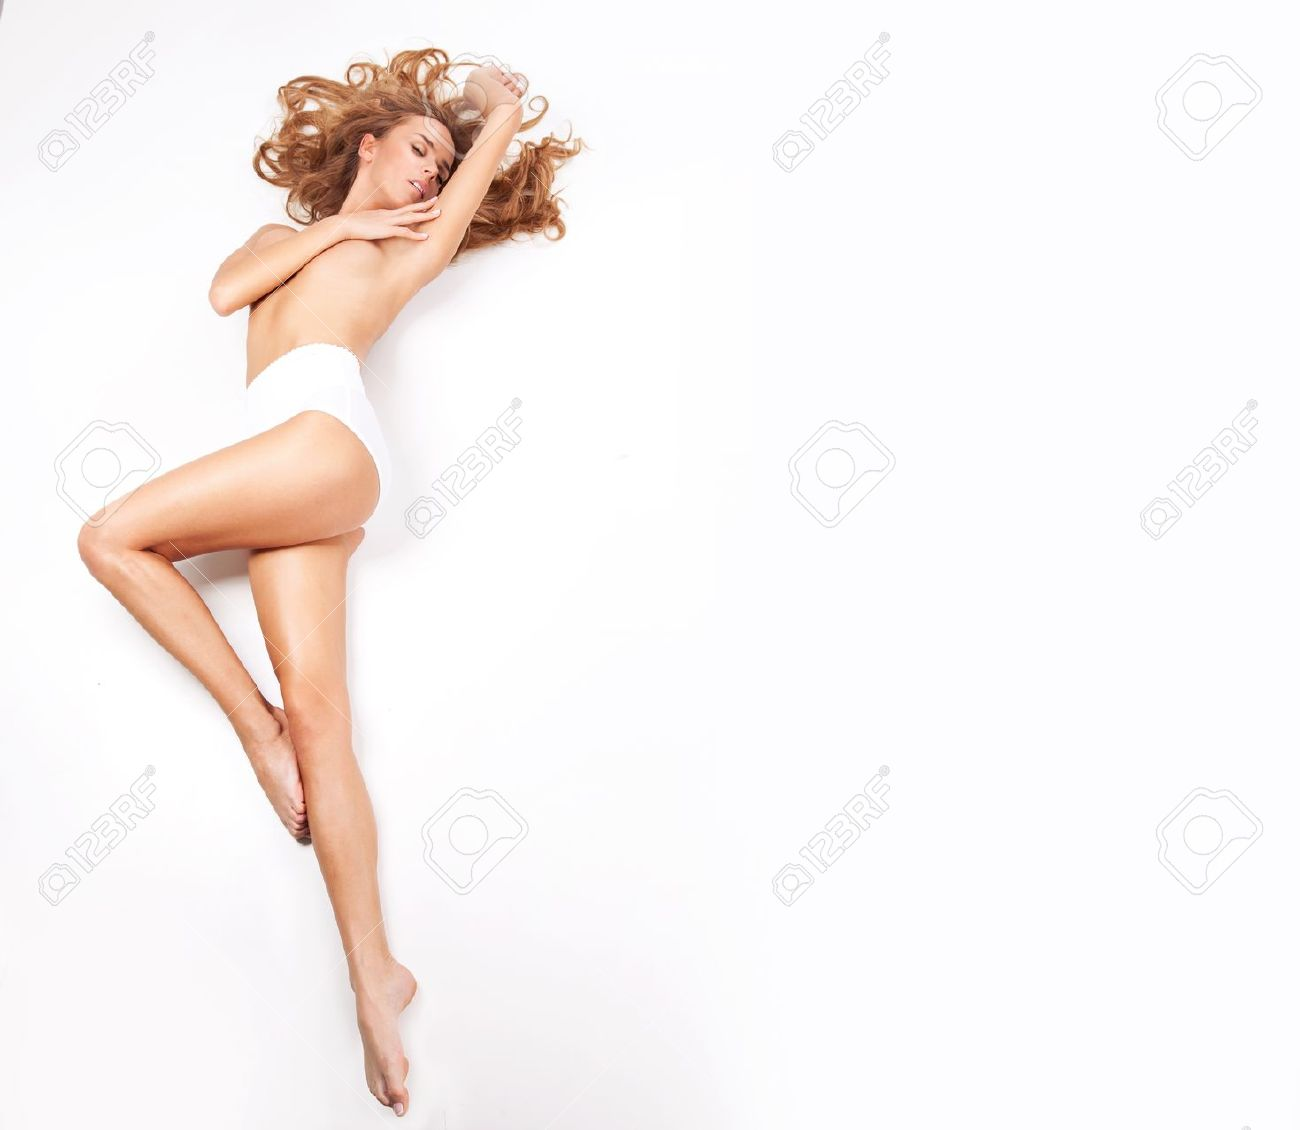 Delicate blond woman lying on a white background Stock Photo - 19398656